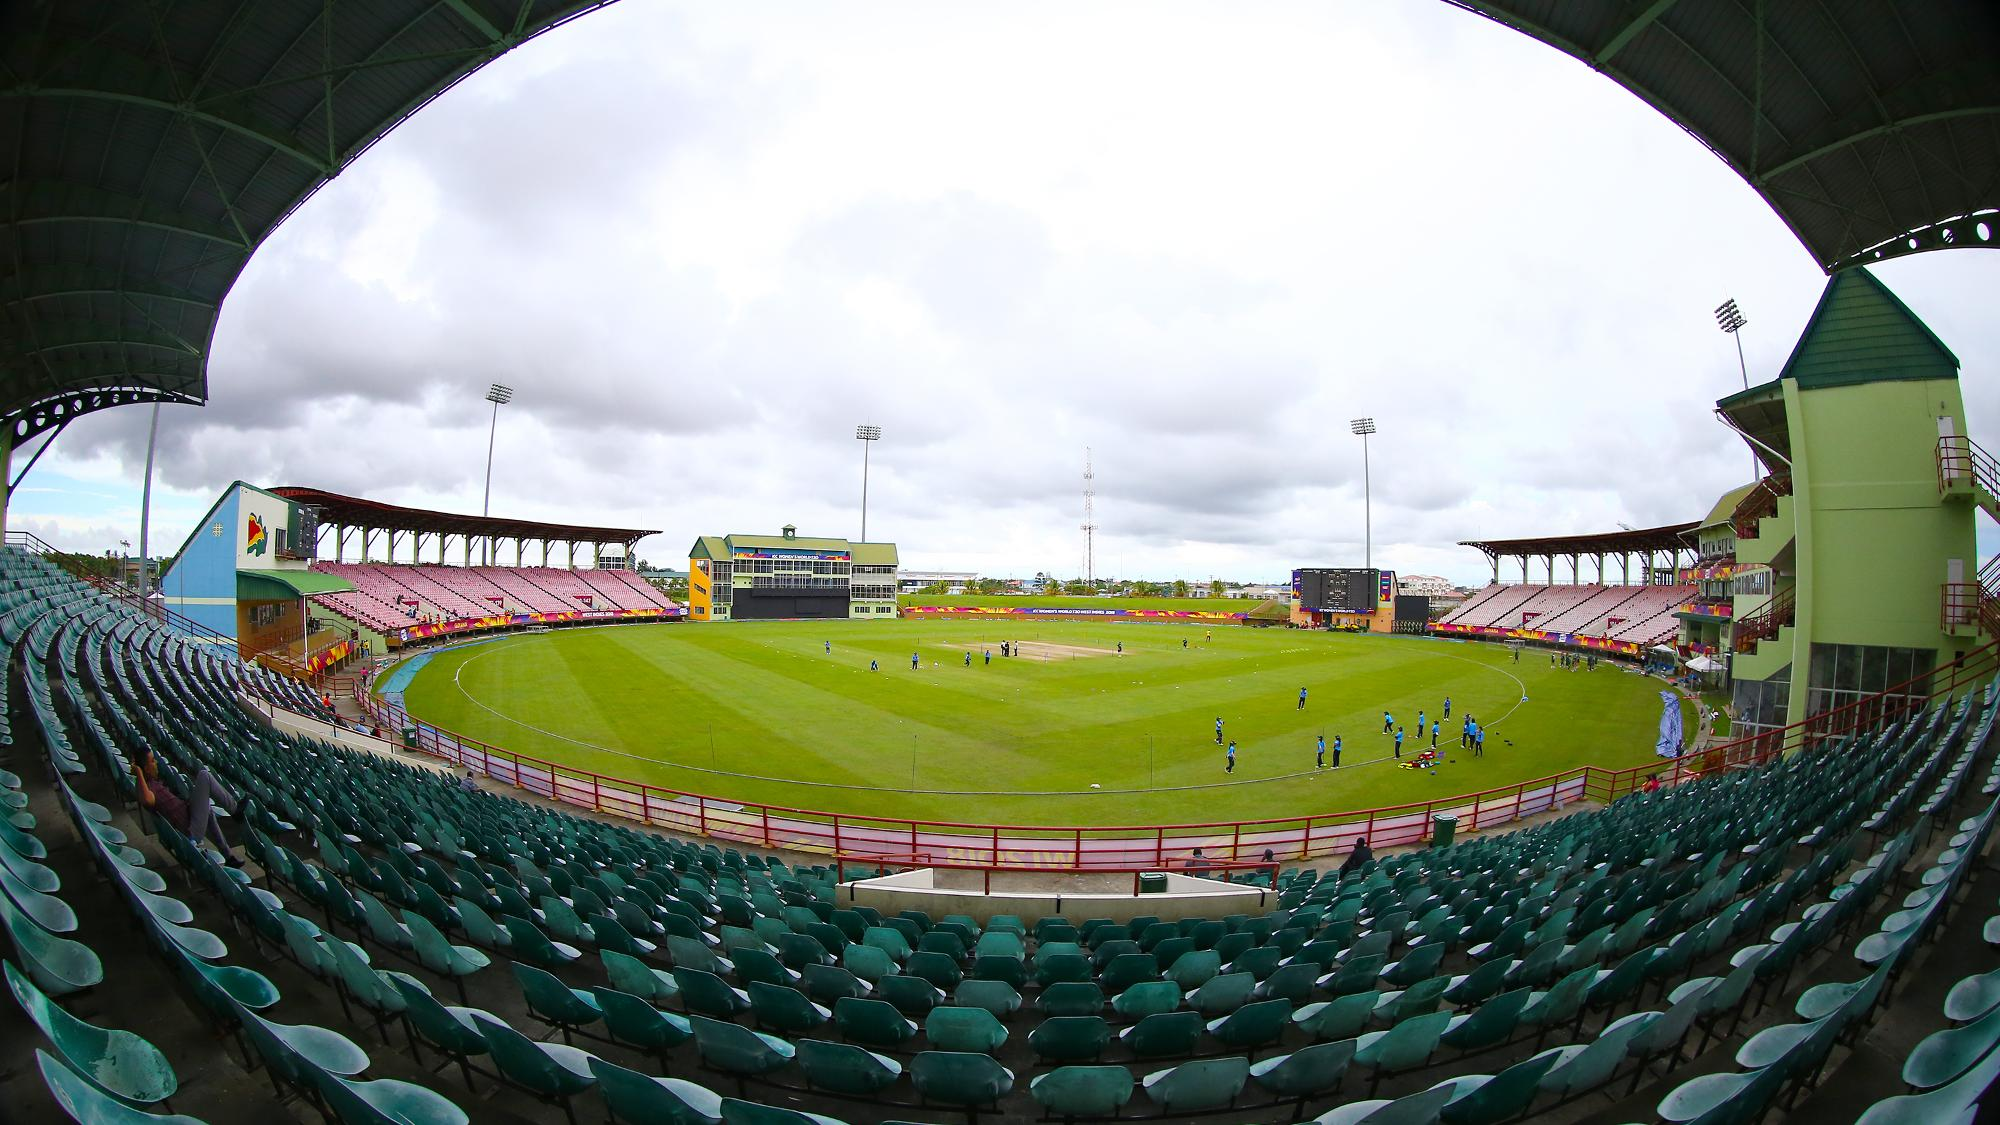 A general view of the Guyana National Stadium during the ICC Women's World T20 warm up match between Bangladesh and Ireland on November 4, 2018 in Providence, Guyana.